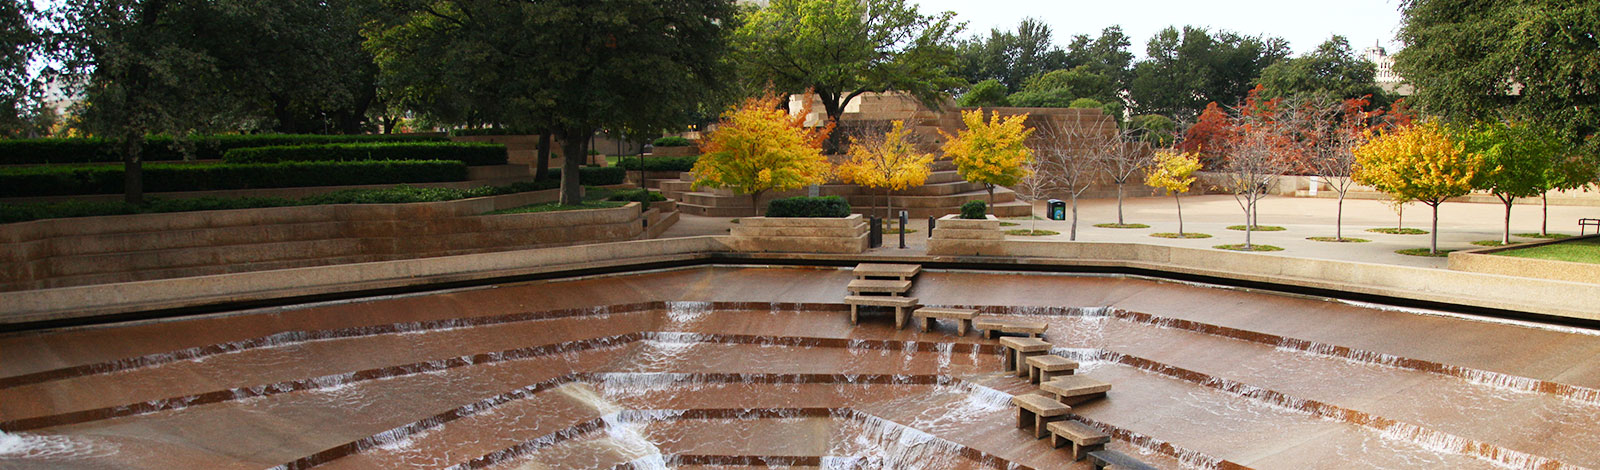 brian-luenser-fort-worth-water-gardens-fall